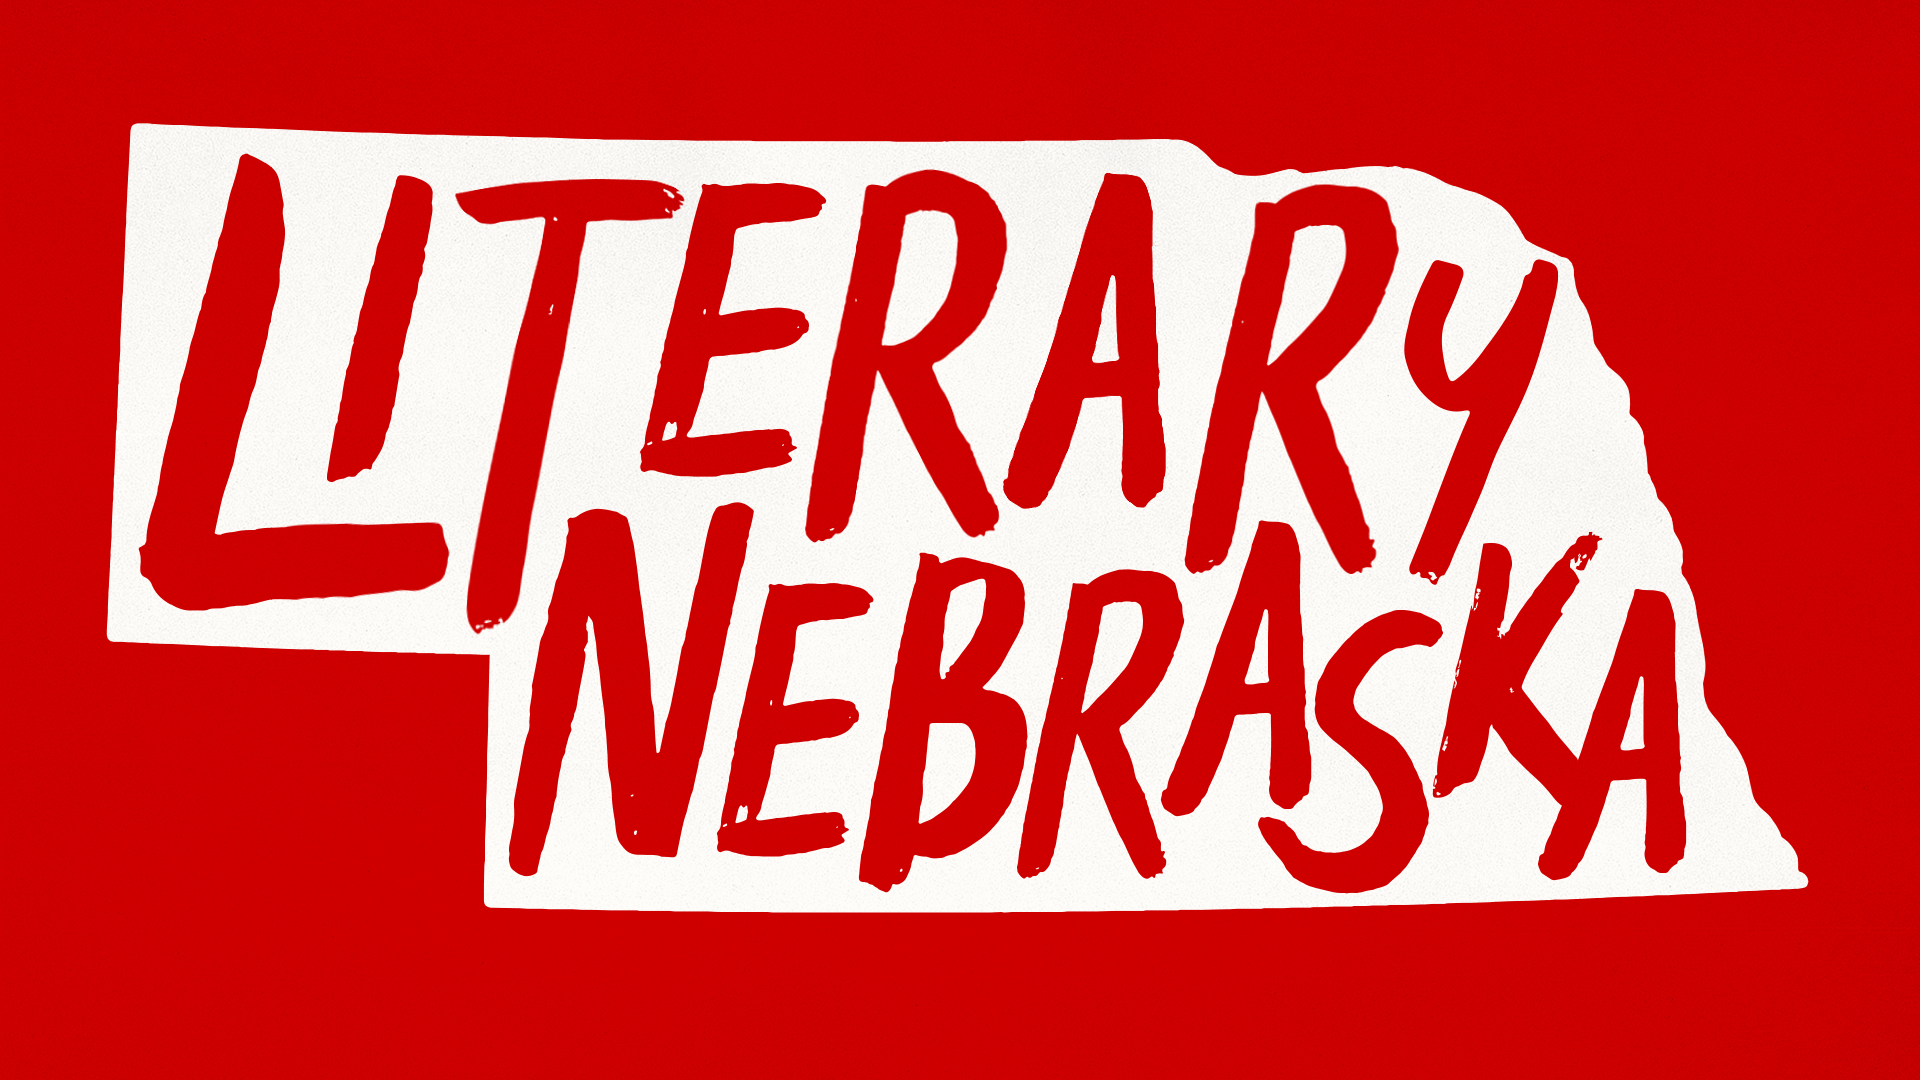 Literary Nebraska logo - handwritten text inside state silhouette; links to news story